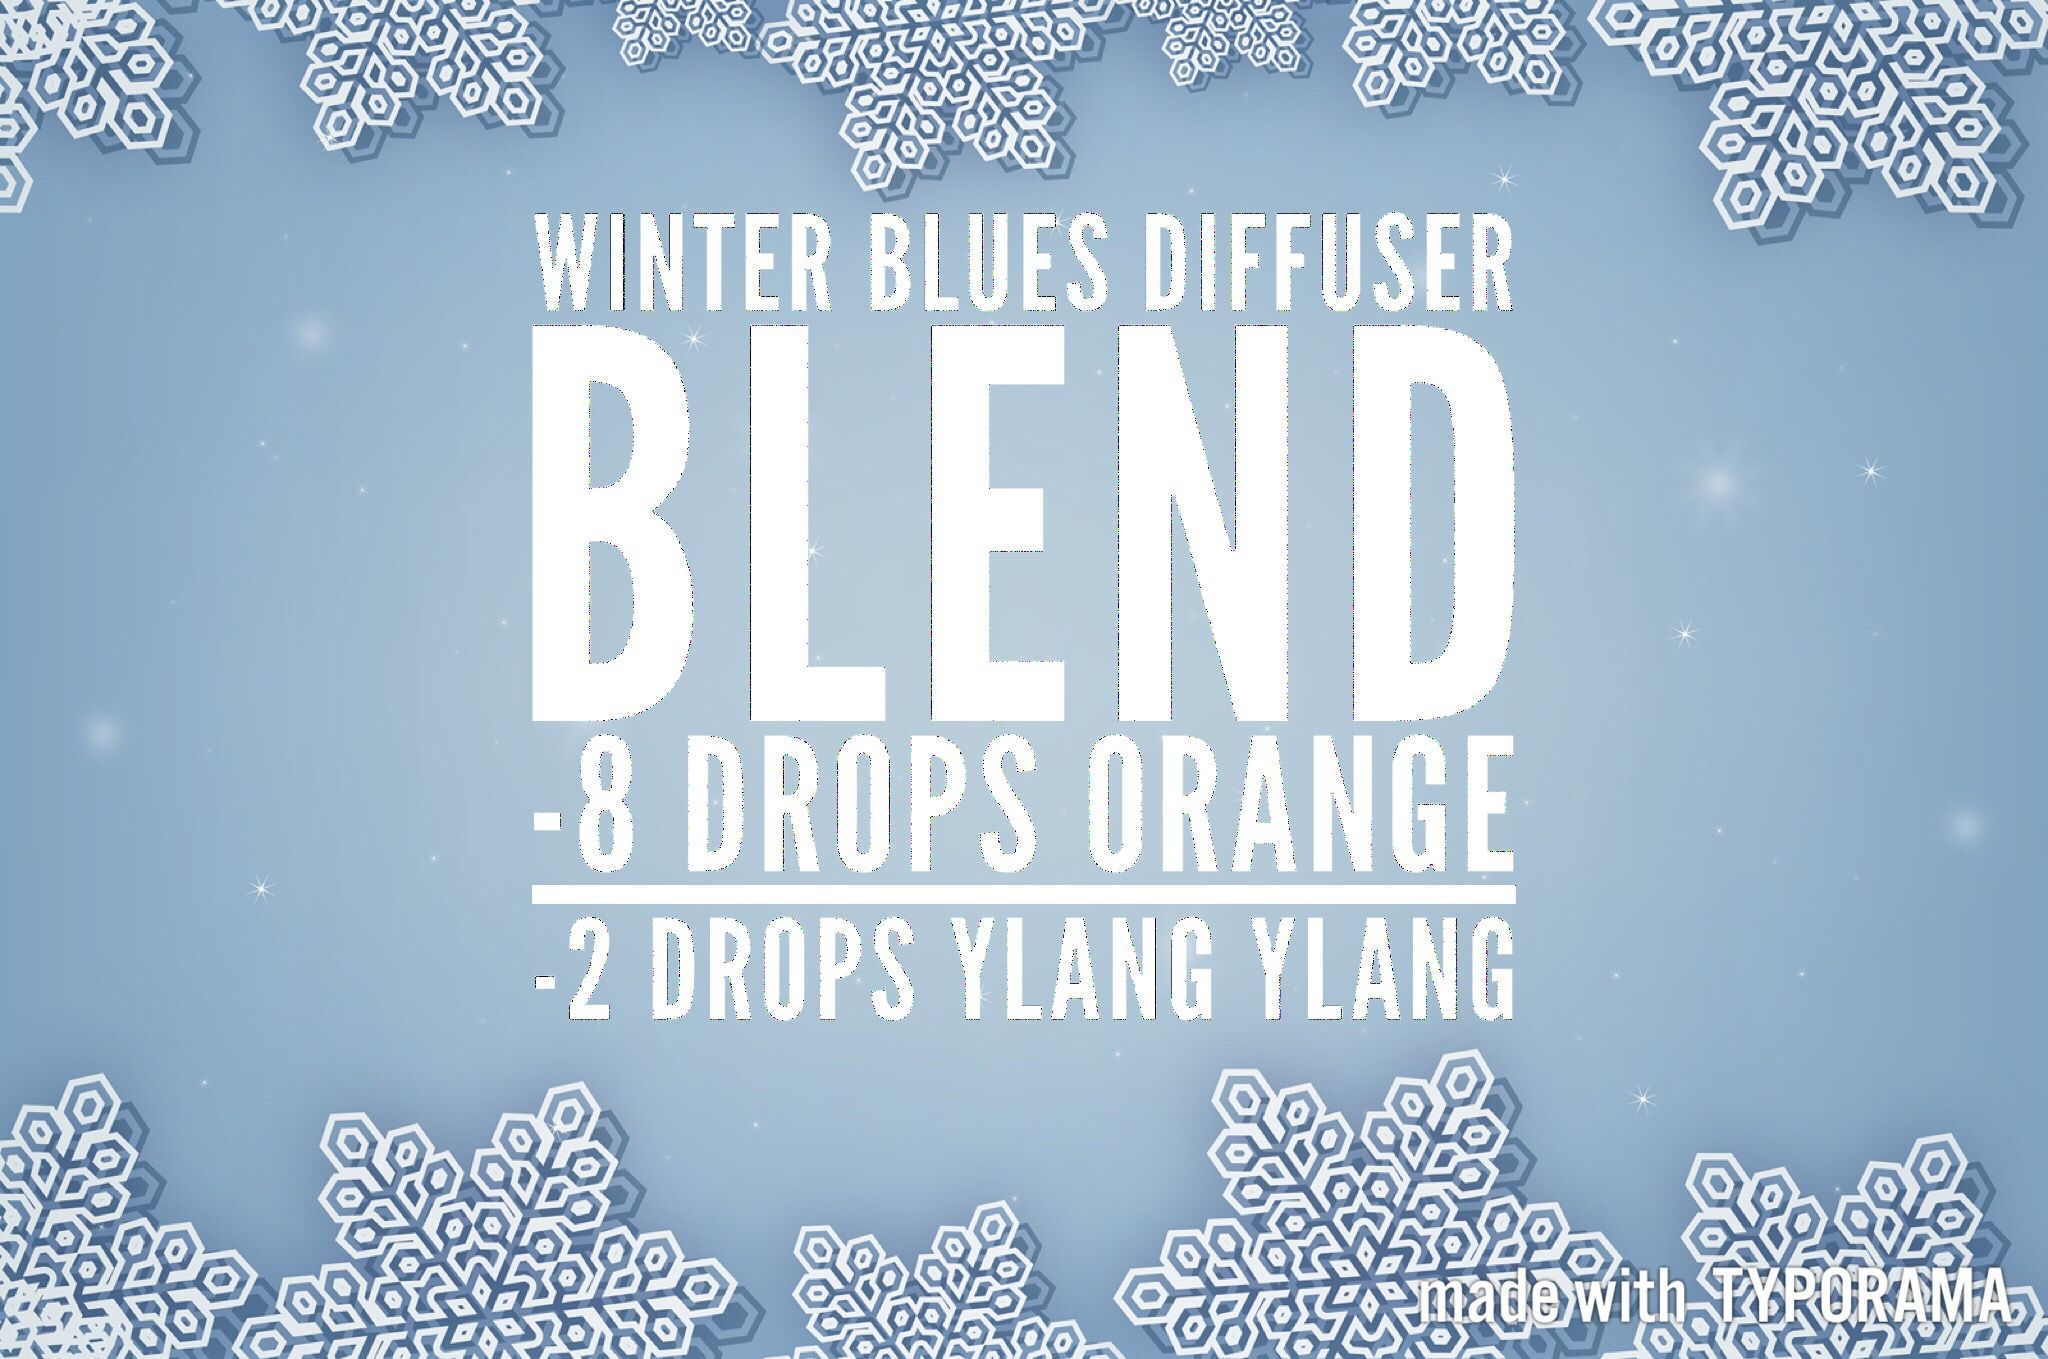 Winter Blues Diffuser Blend – Traveling Hippies #winterdiffuserblends